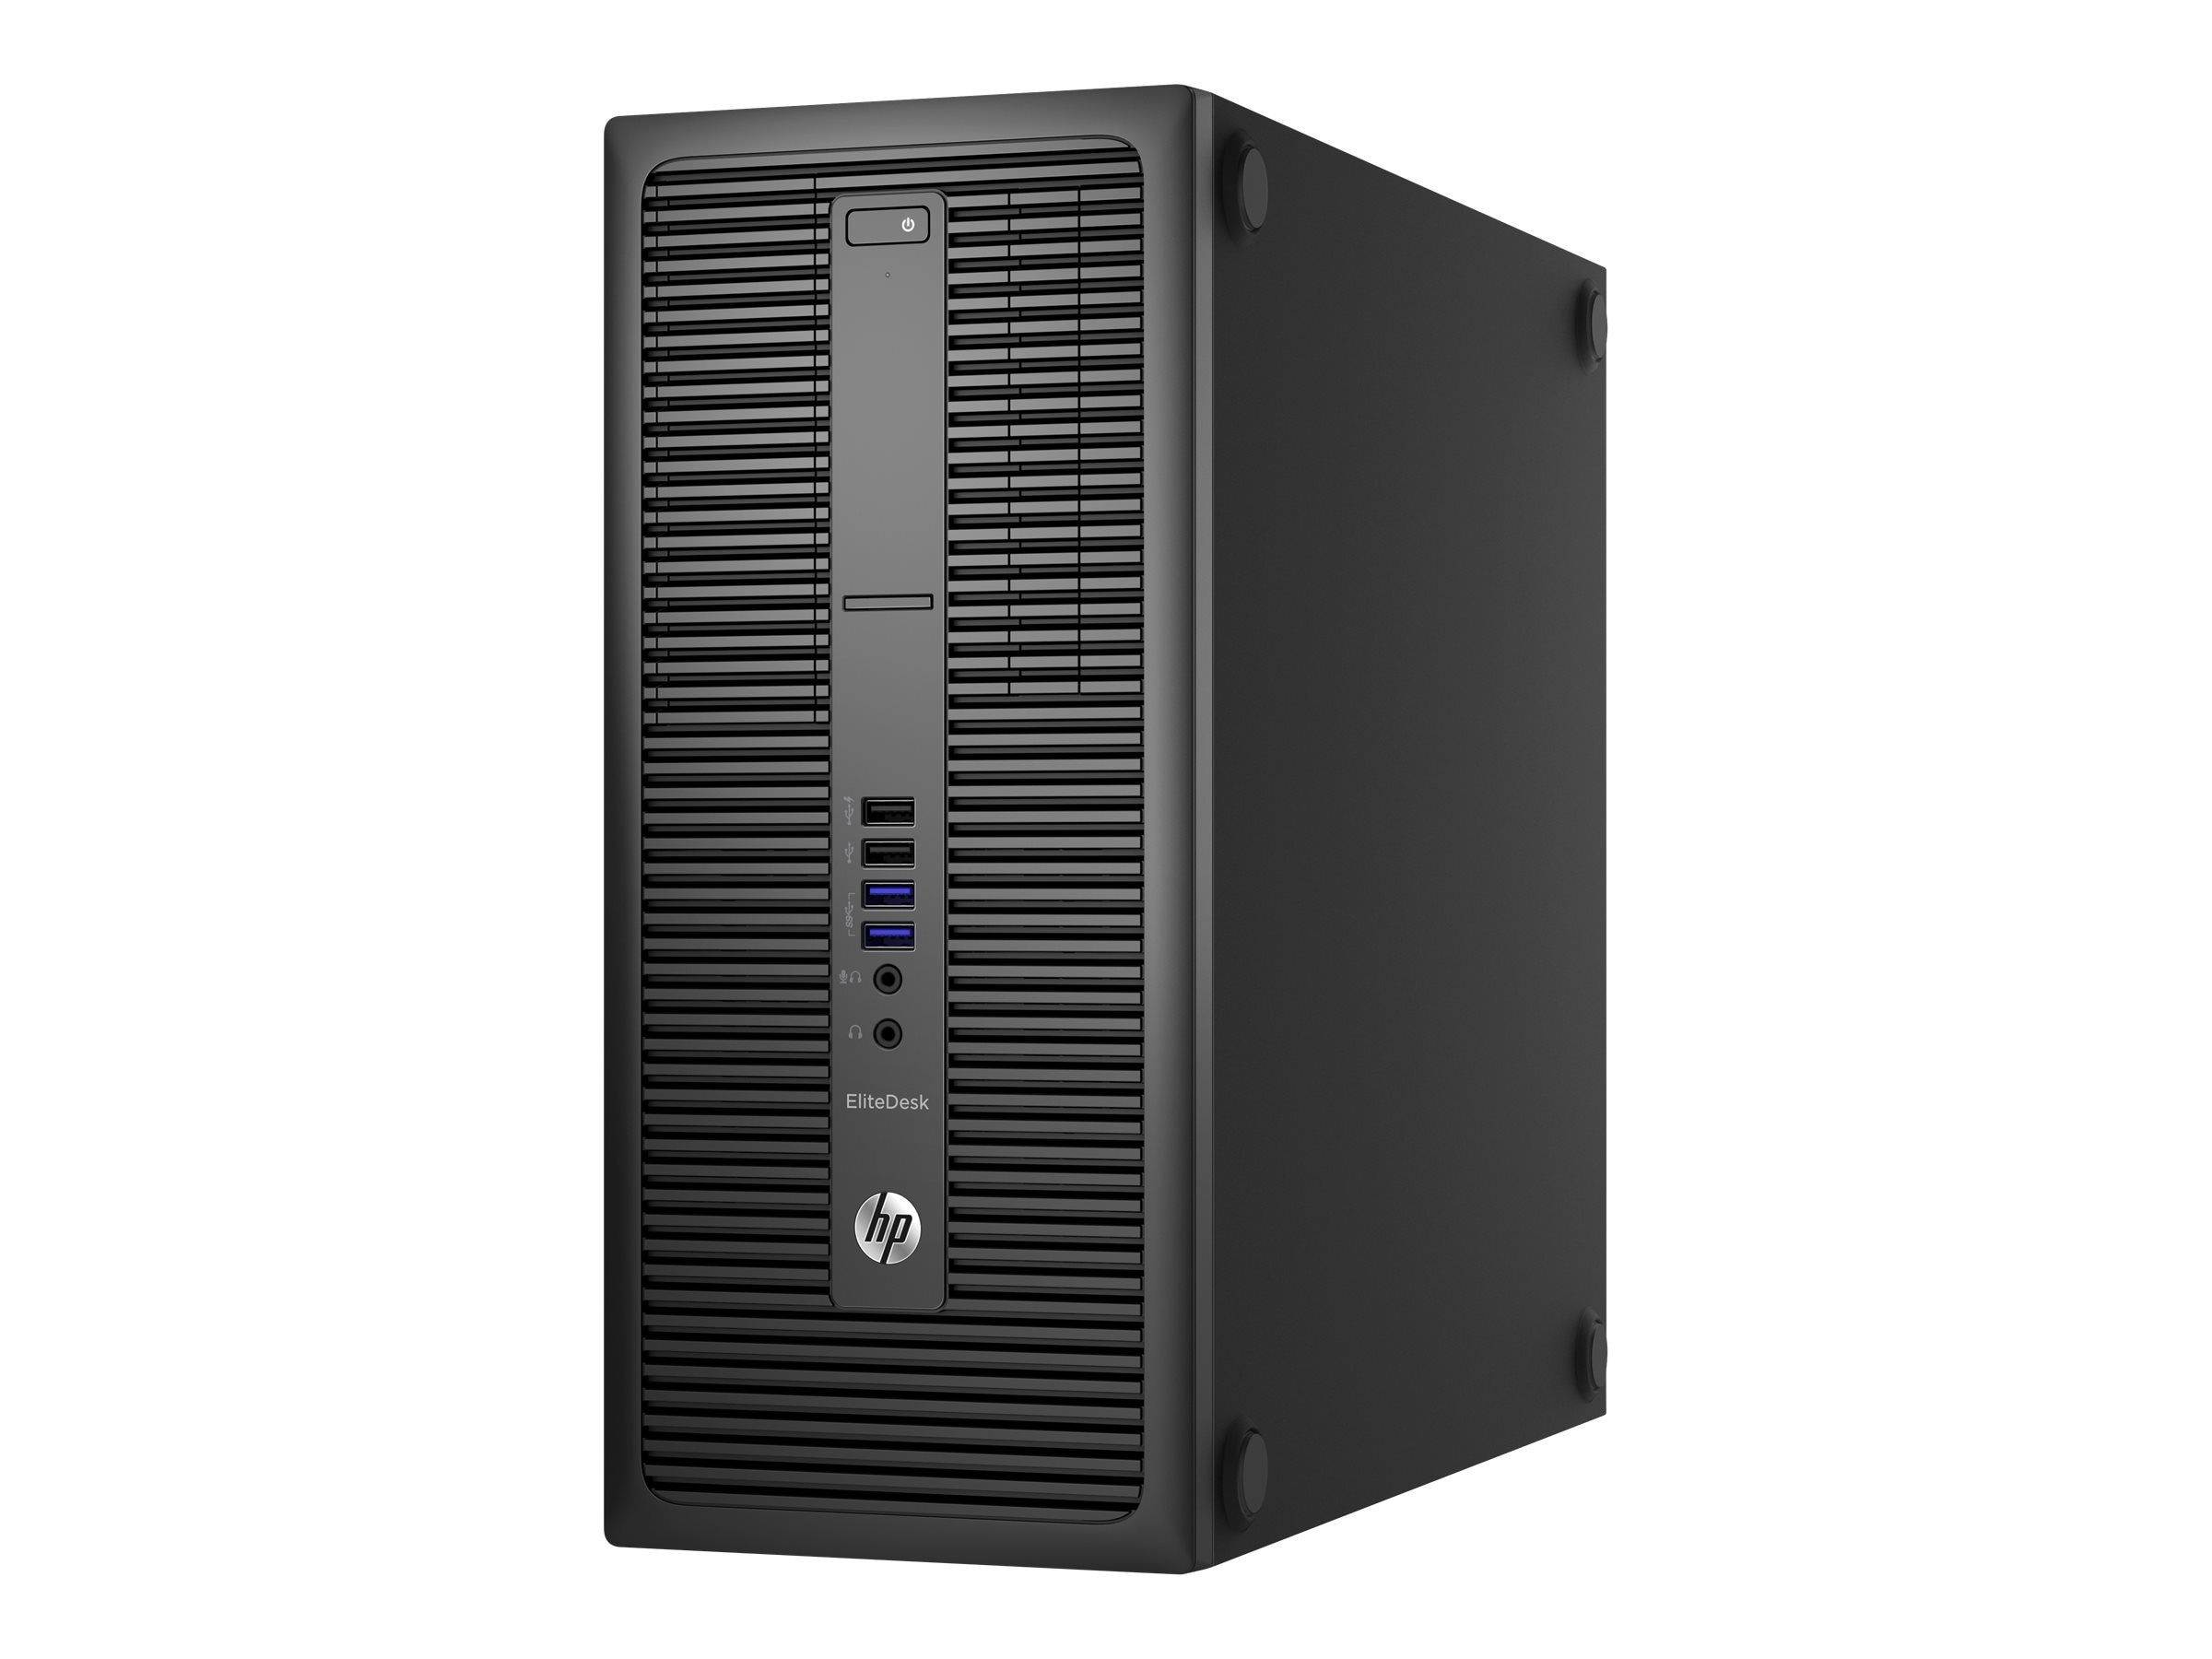 HP EliteDesk 800 G2 Tower Core i7-6700 8GB 1TB, V8Y01UP#ABA